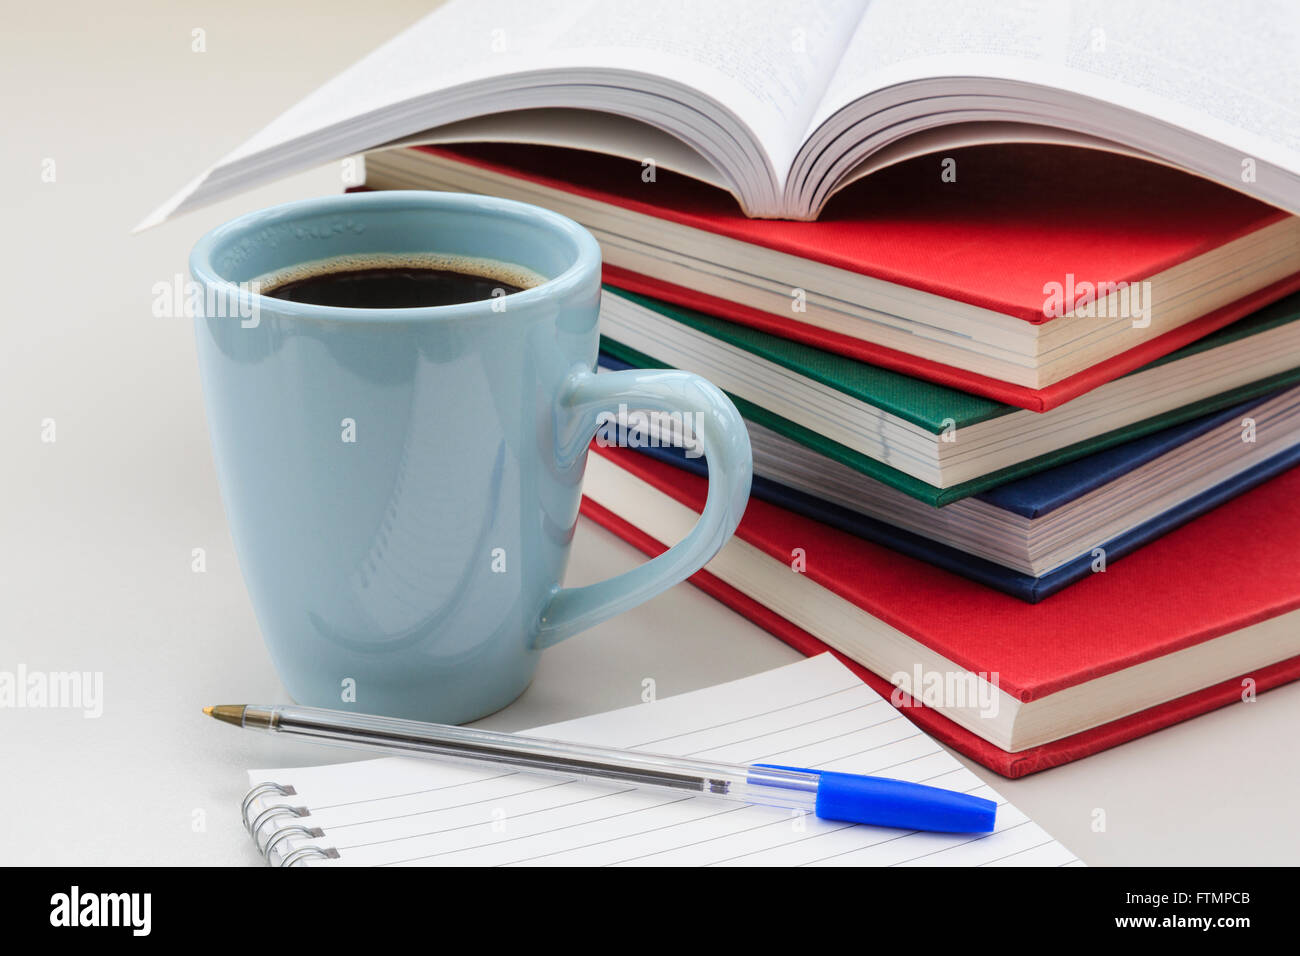 Student's study scene with pile of books and mug of strong black coffee by a notebook and pen on a desk for - Stock Image